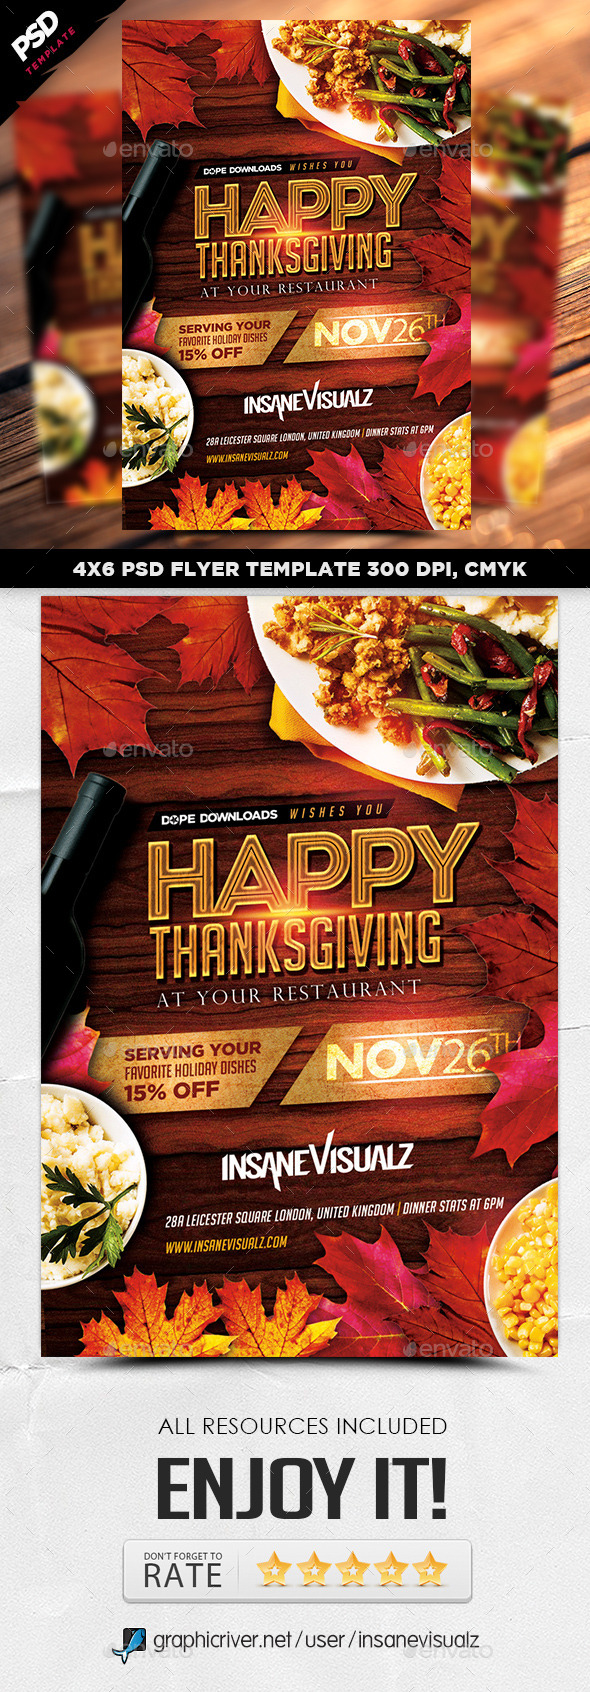 GraphicRiver Happy Thanksgiving Flyer 9289959